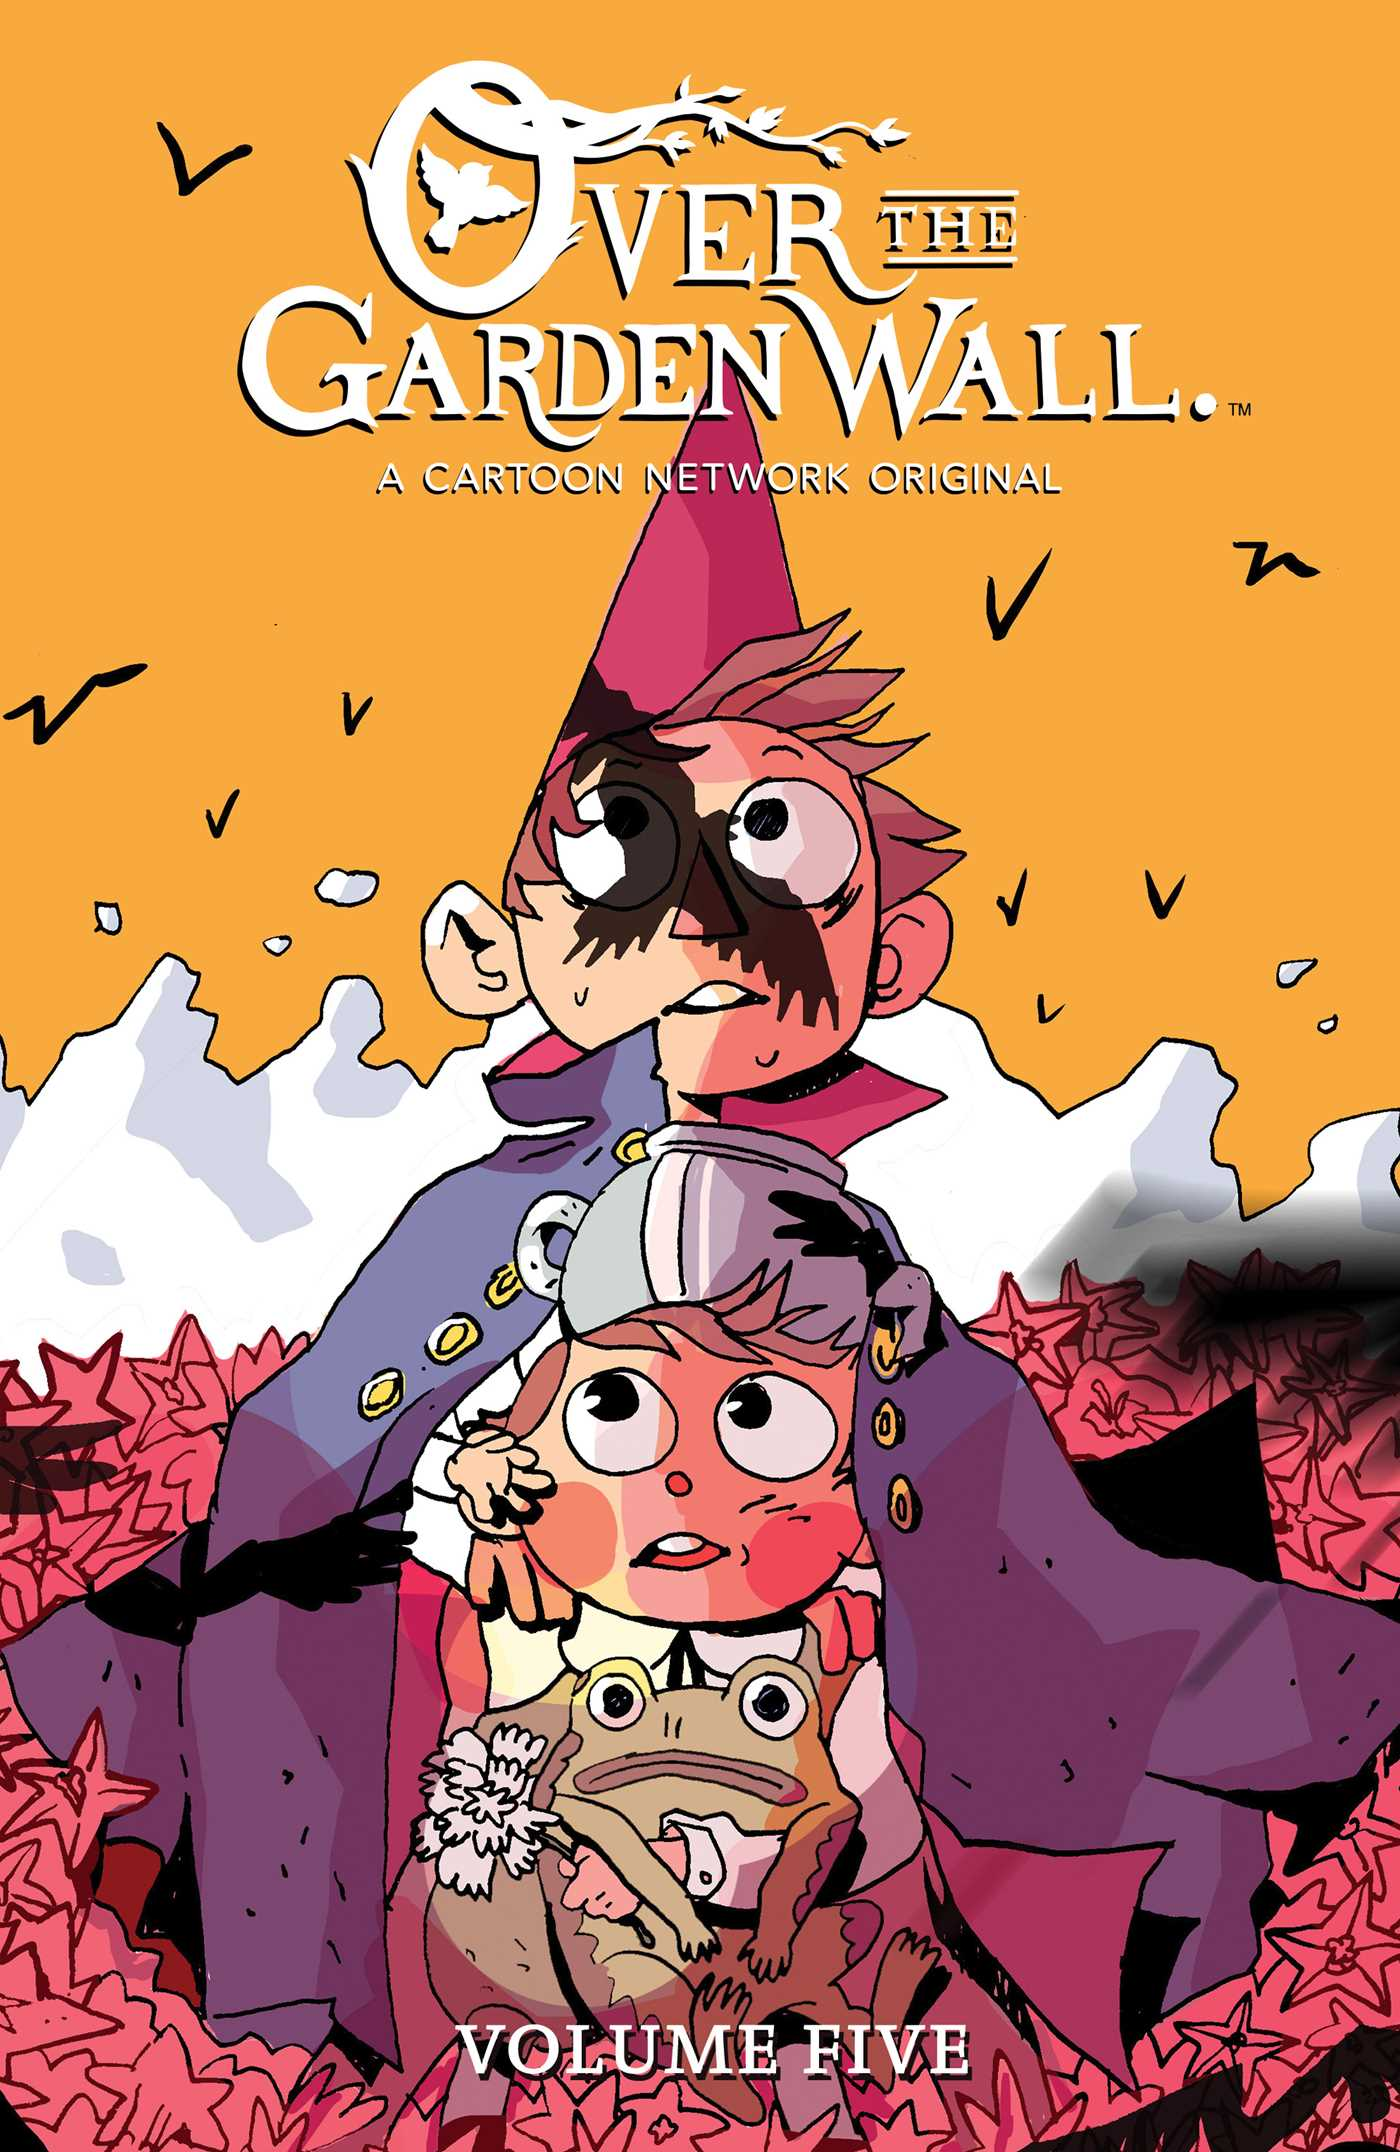 over the garden wall vol 5 9781684152421 hr - Garden Wall